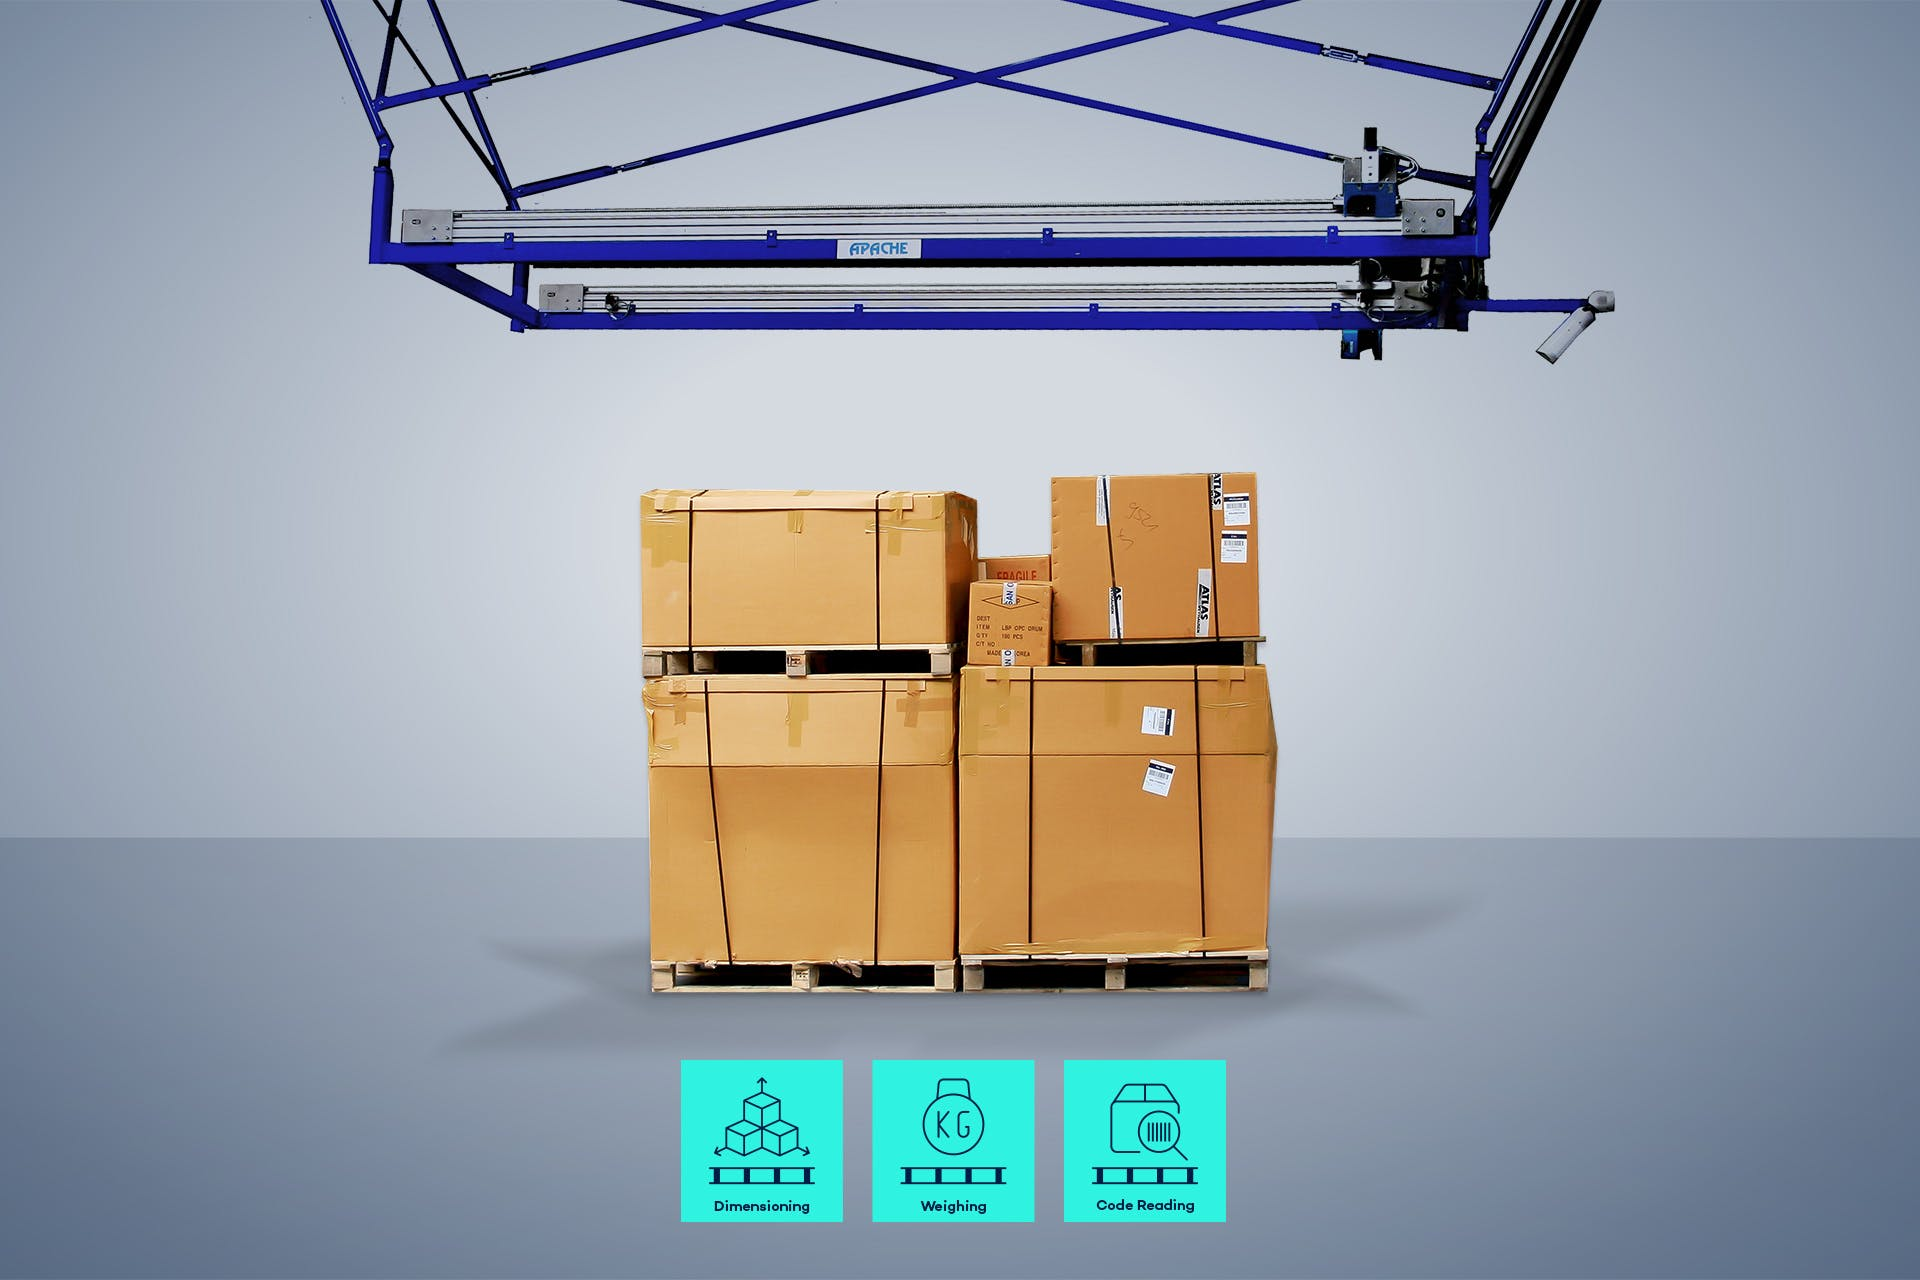 Automated air freight handling results in faster processes